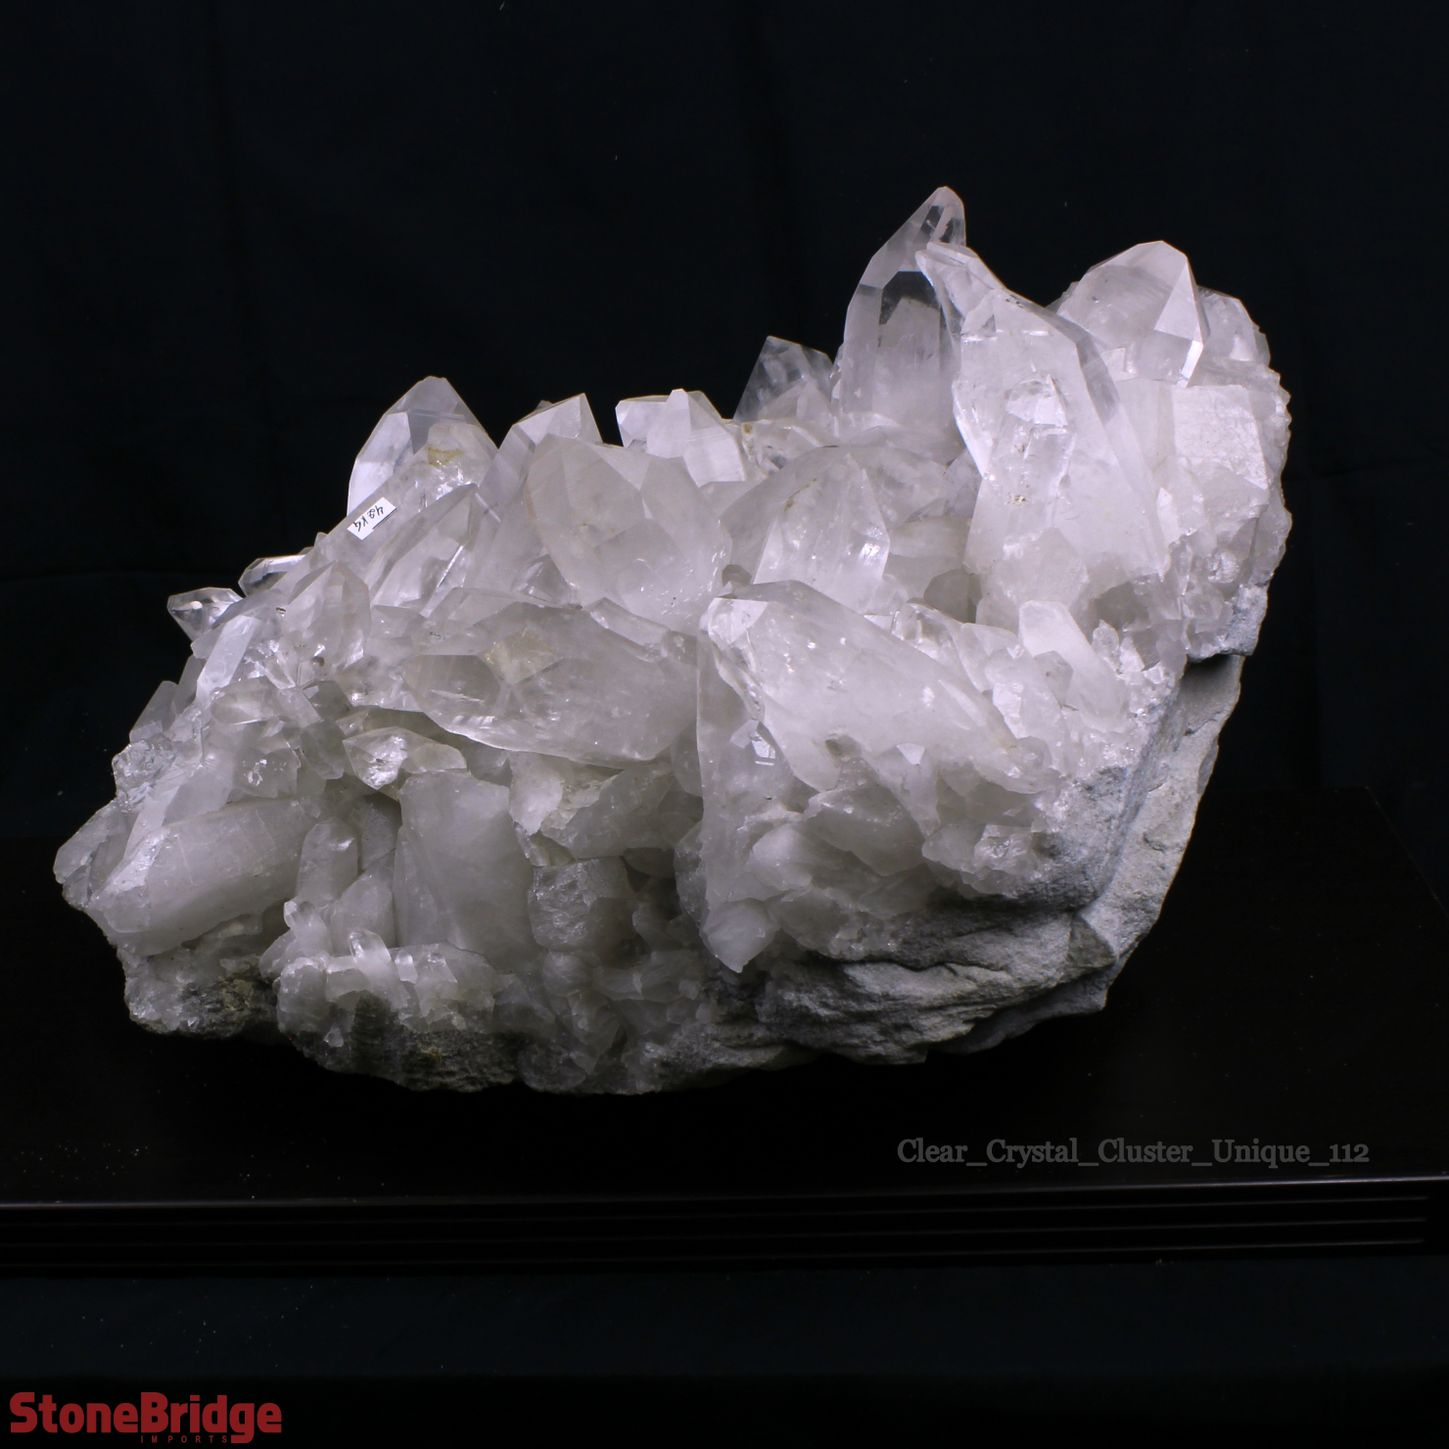 CLCRU112_Clear_Crystal_Cluster_Unique_1129.jpg